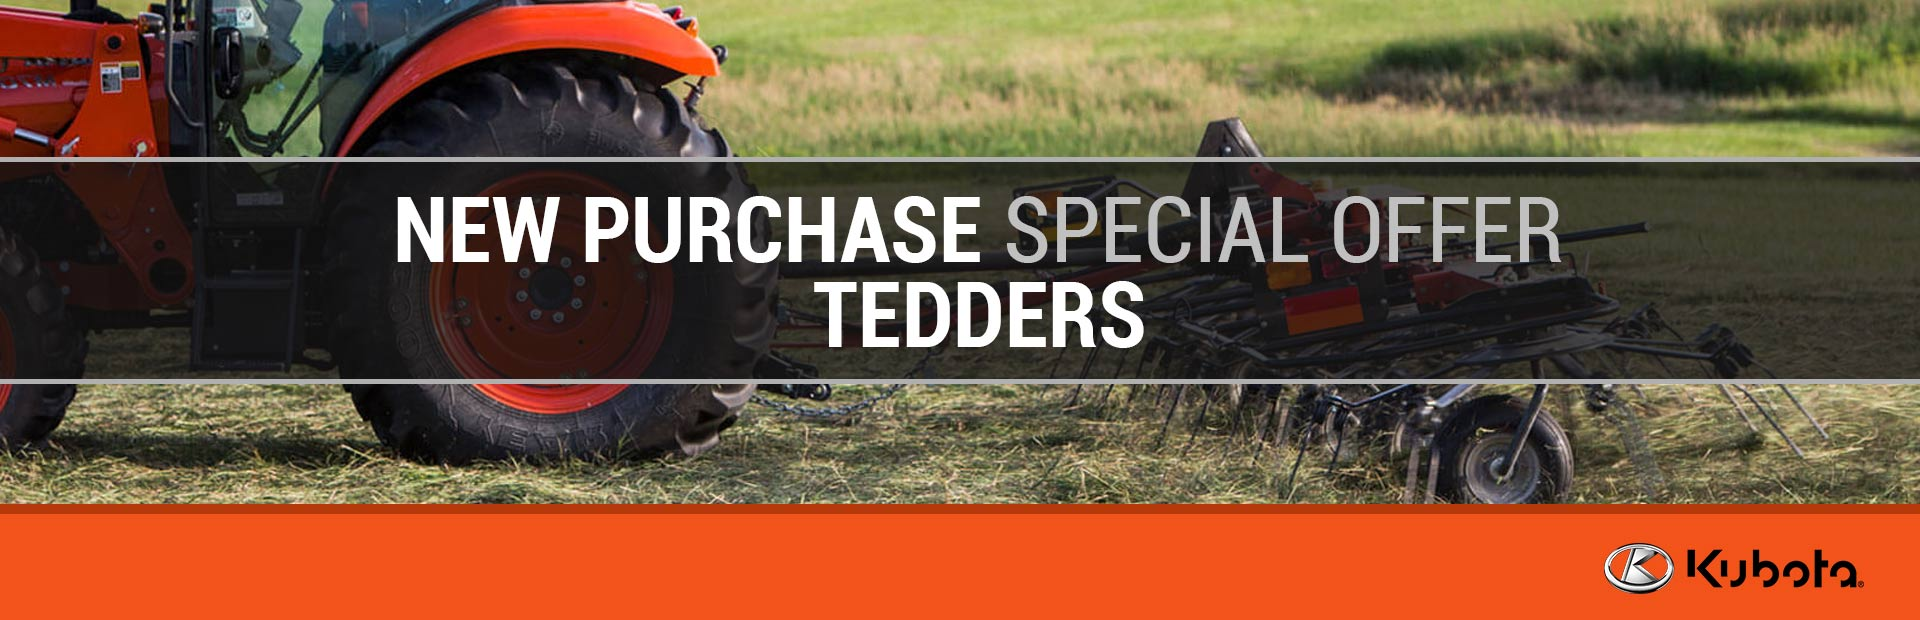 Kubota: New Purchase Special Offer - Tedders